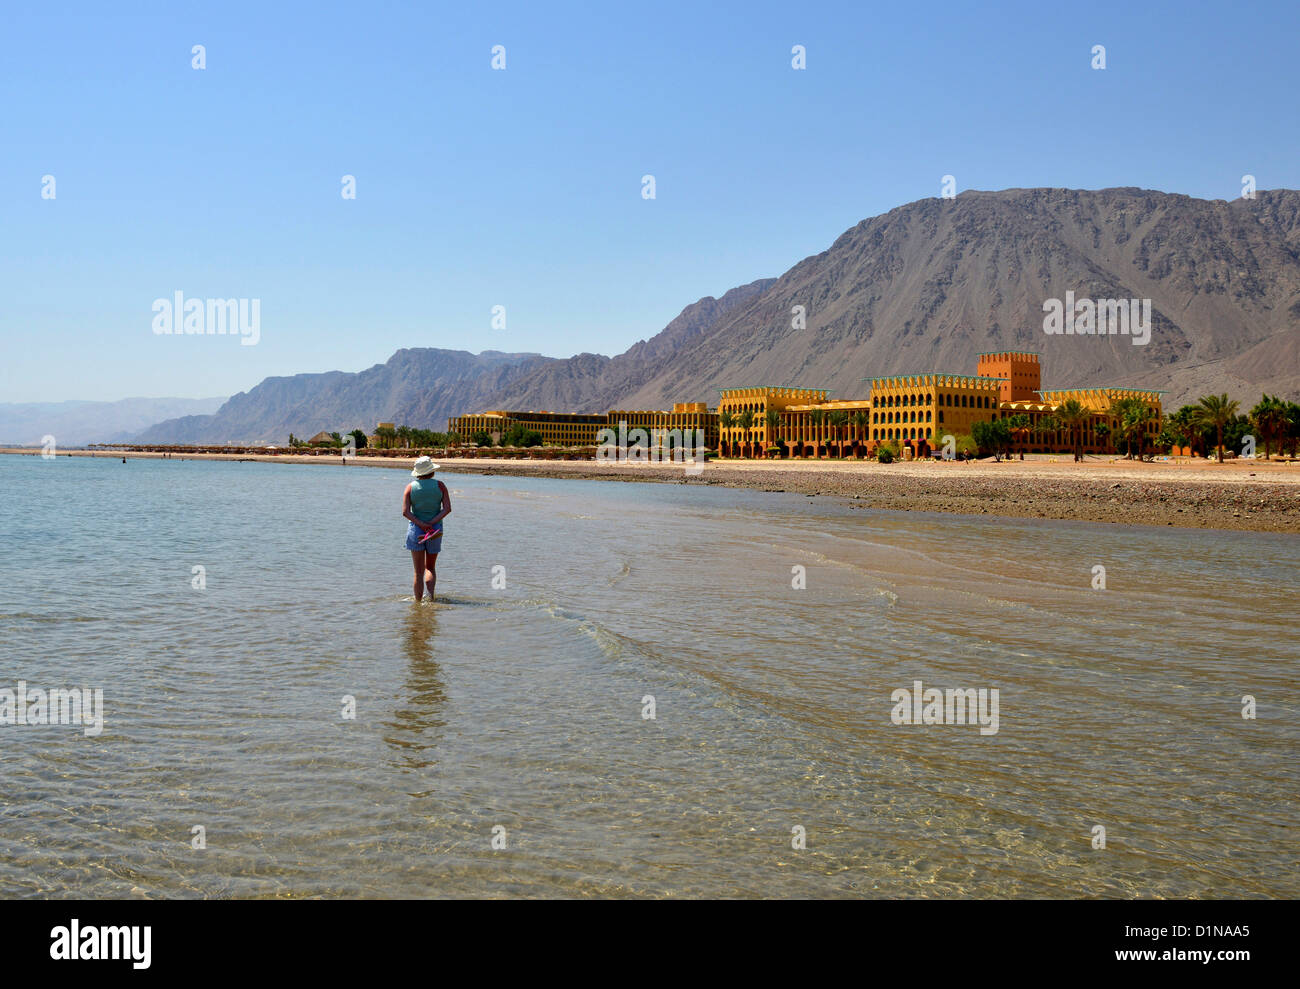 Intercontinental Hotel, Taba Heights holiday resort complex at Sinai in Egypt - Stock Image